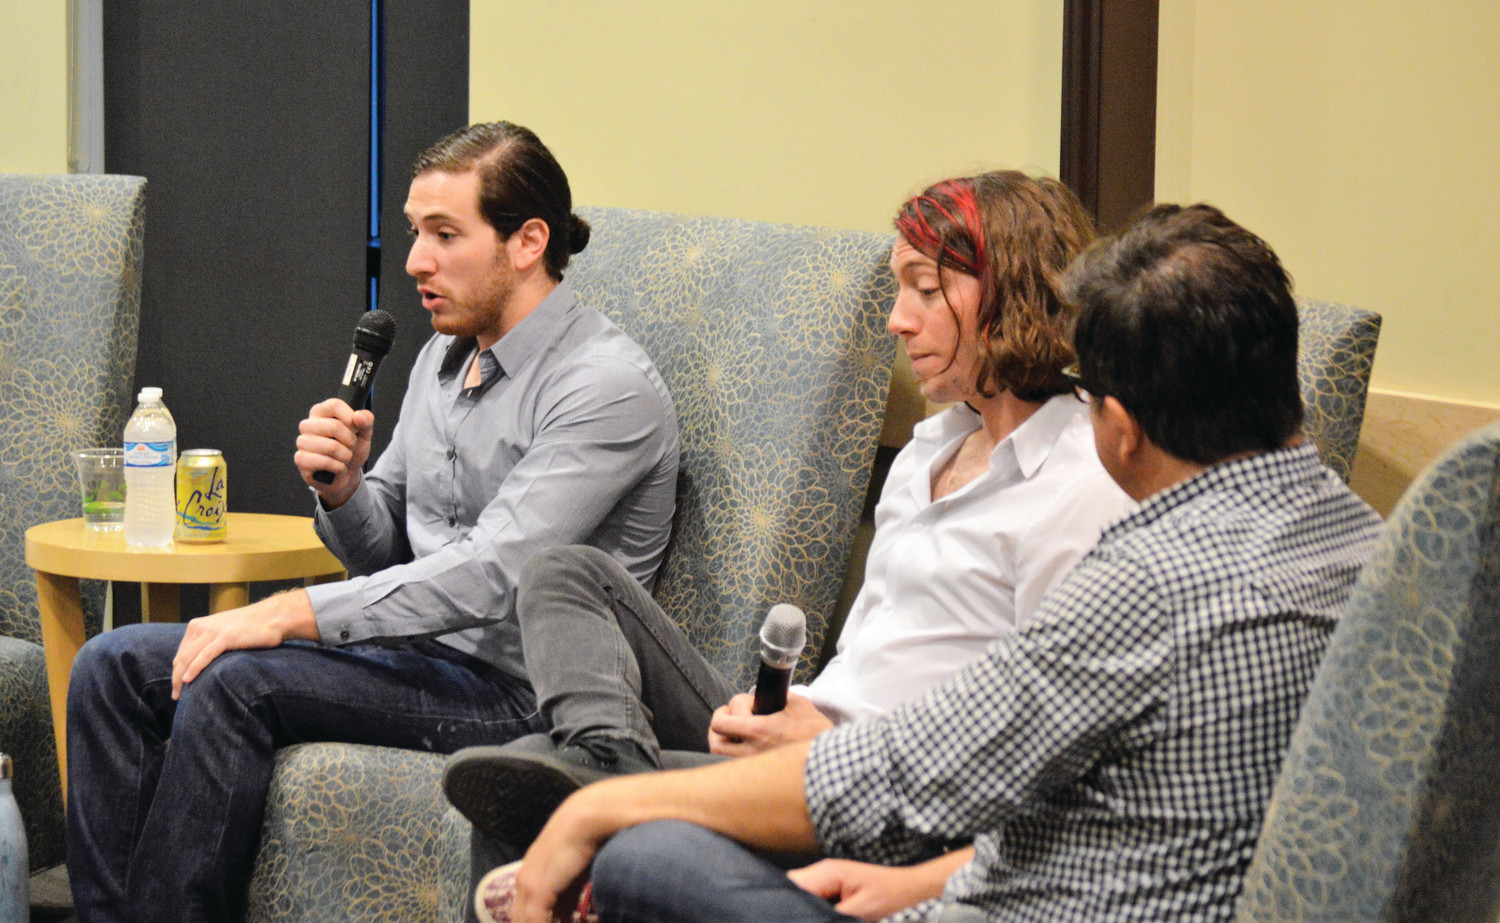 Alex Levine, of marijuana dispensary chain Green Dragon, Jesse Burns of Denver's Sweet Grass Kitchen and marijuana industry writer Richardo Baca led a panel discussion about careers in Colorado's cannabis industry Sept. 27 at Anythink Library at Wright Farms in Thornton.